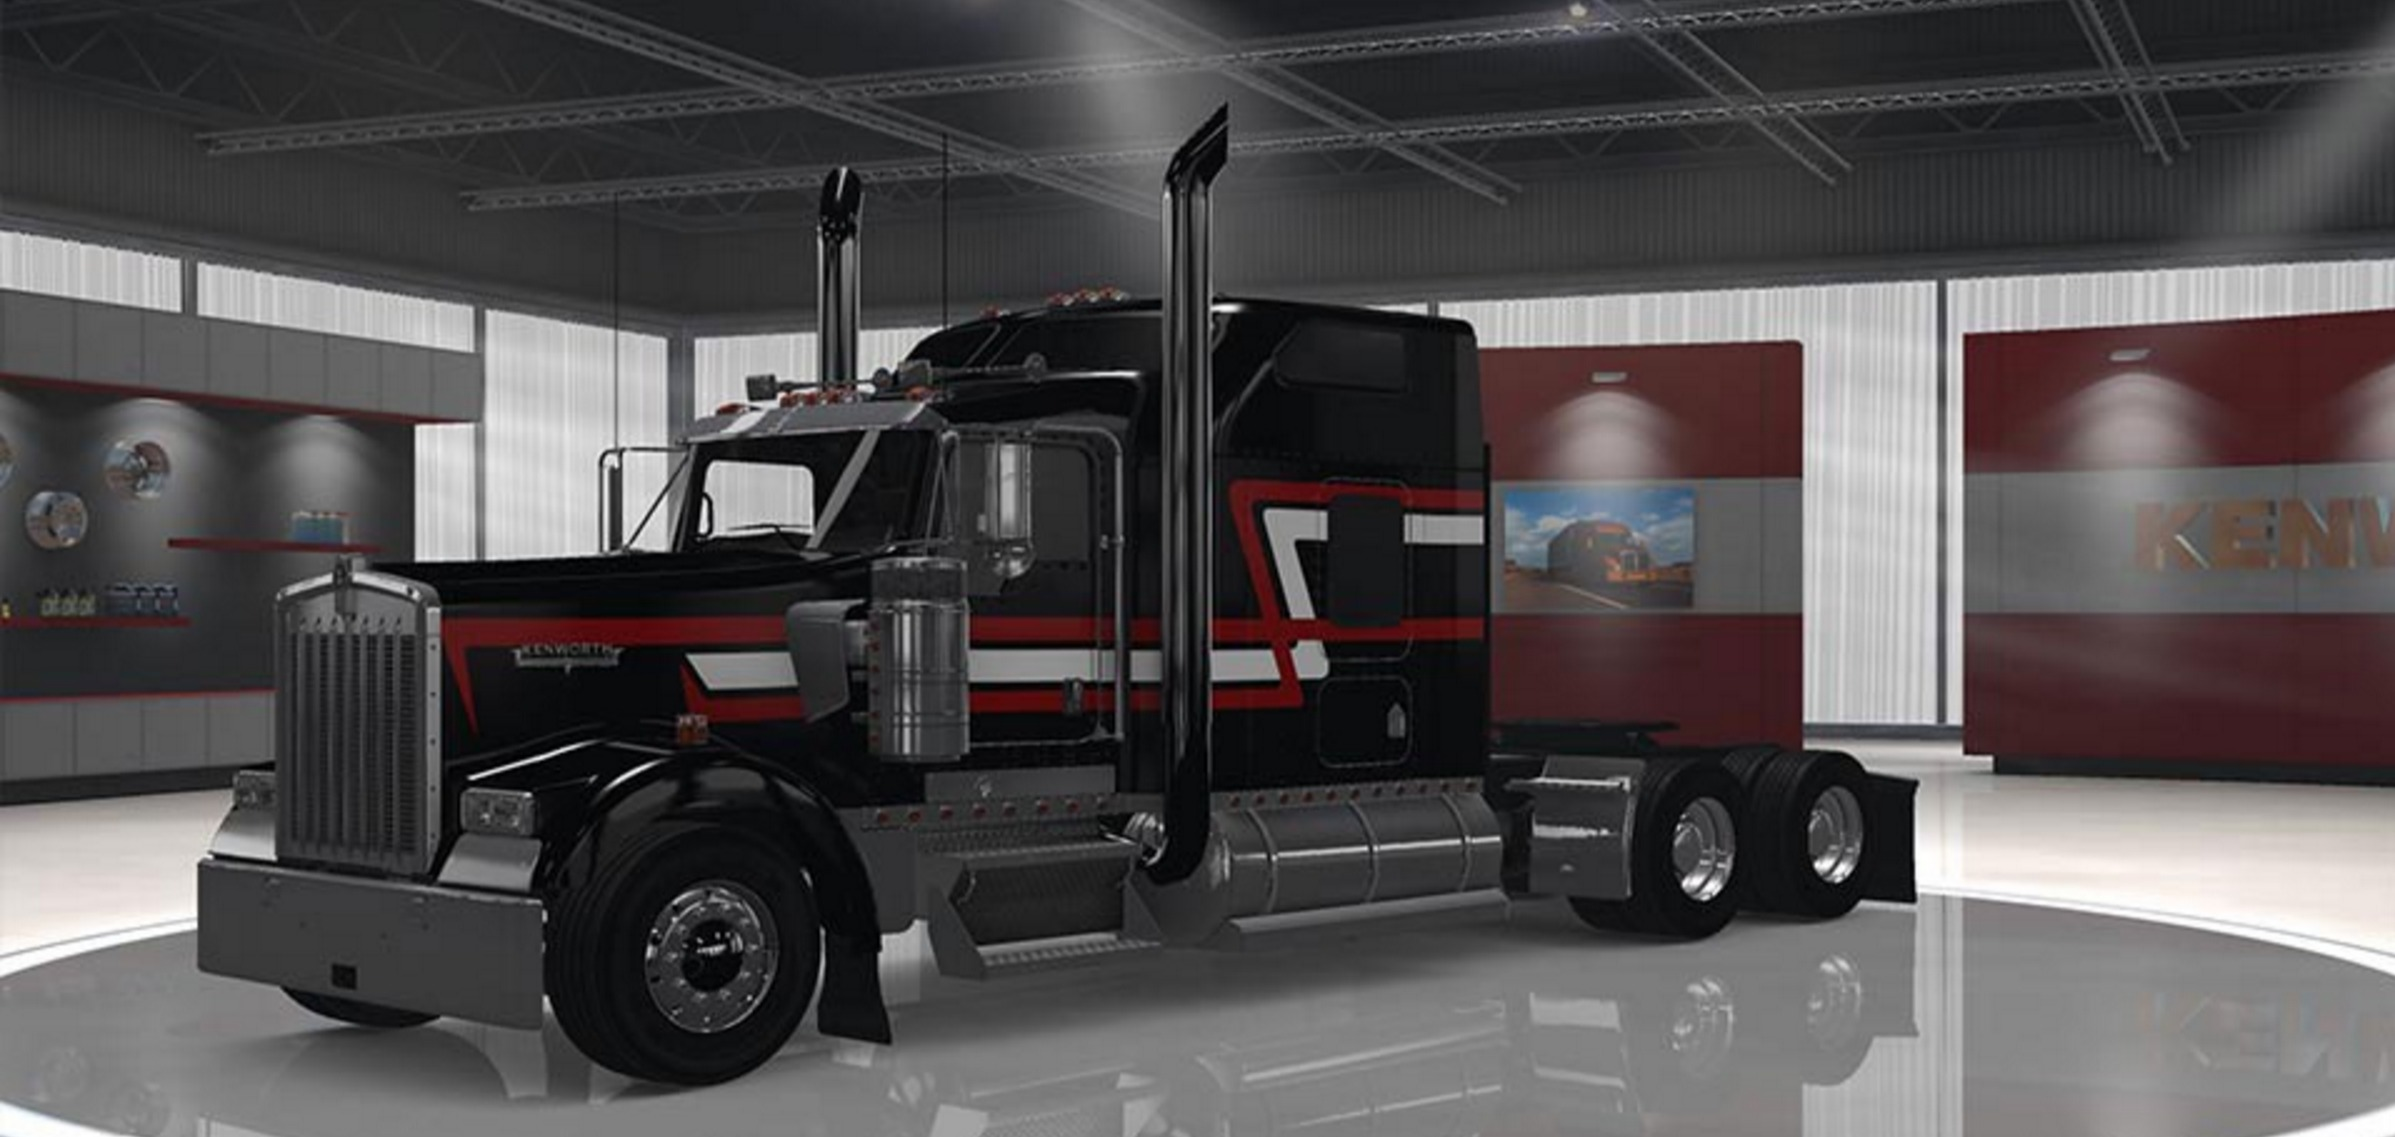 Kenworth-W900-Custom-Black-Red-and-White-Skin-Mod.jpeg